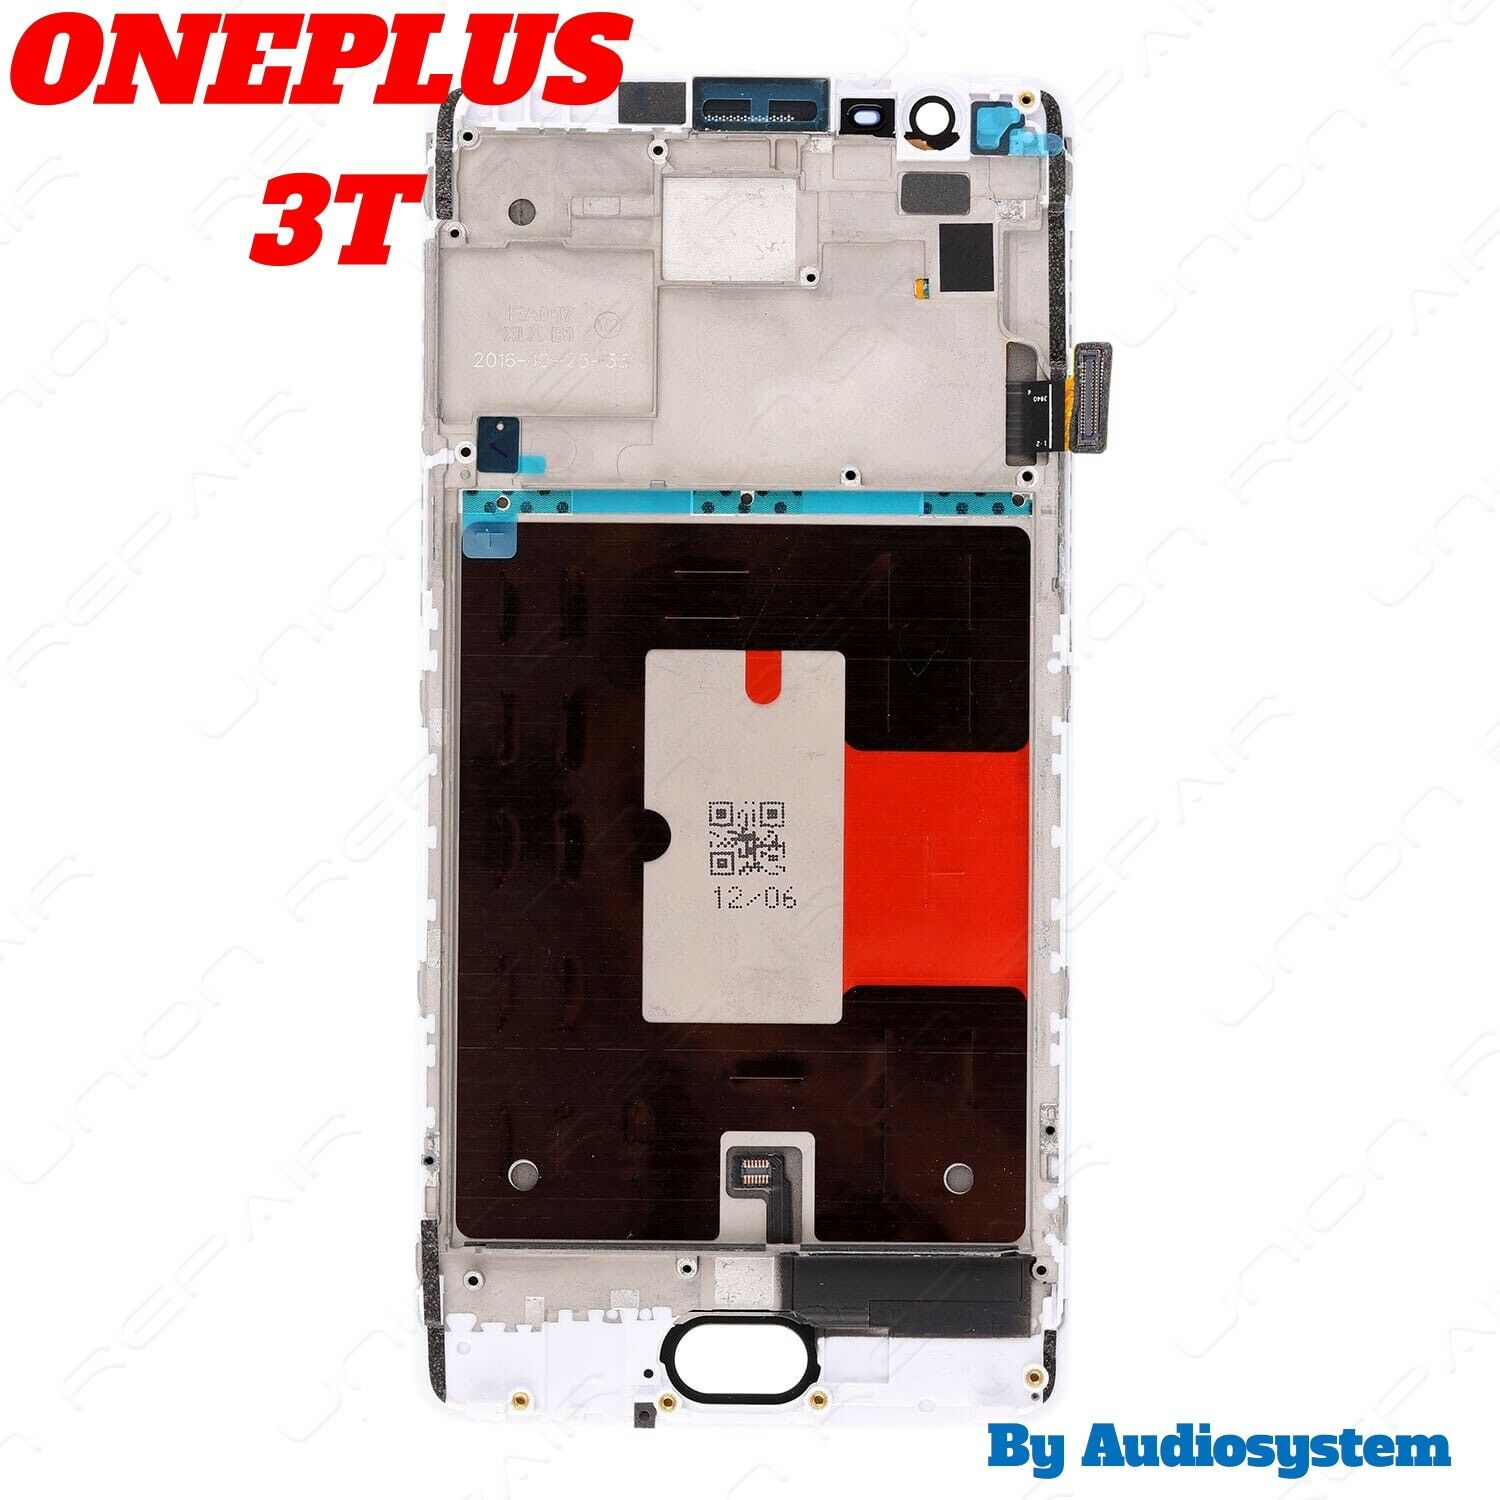 DISPLAY LCD+FRAME COVER PER ONEPLUS 3T A3010 TOUCH SCREEN VETRO BIANCO CORNICE